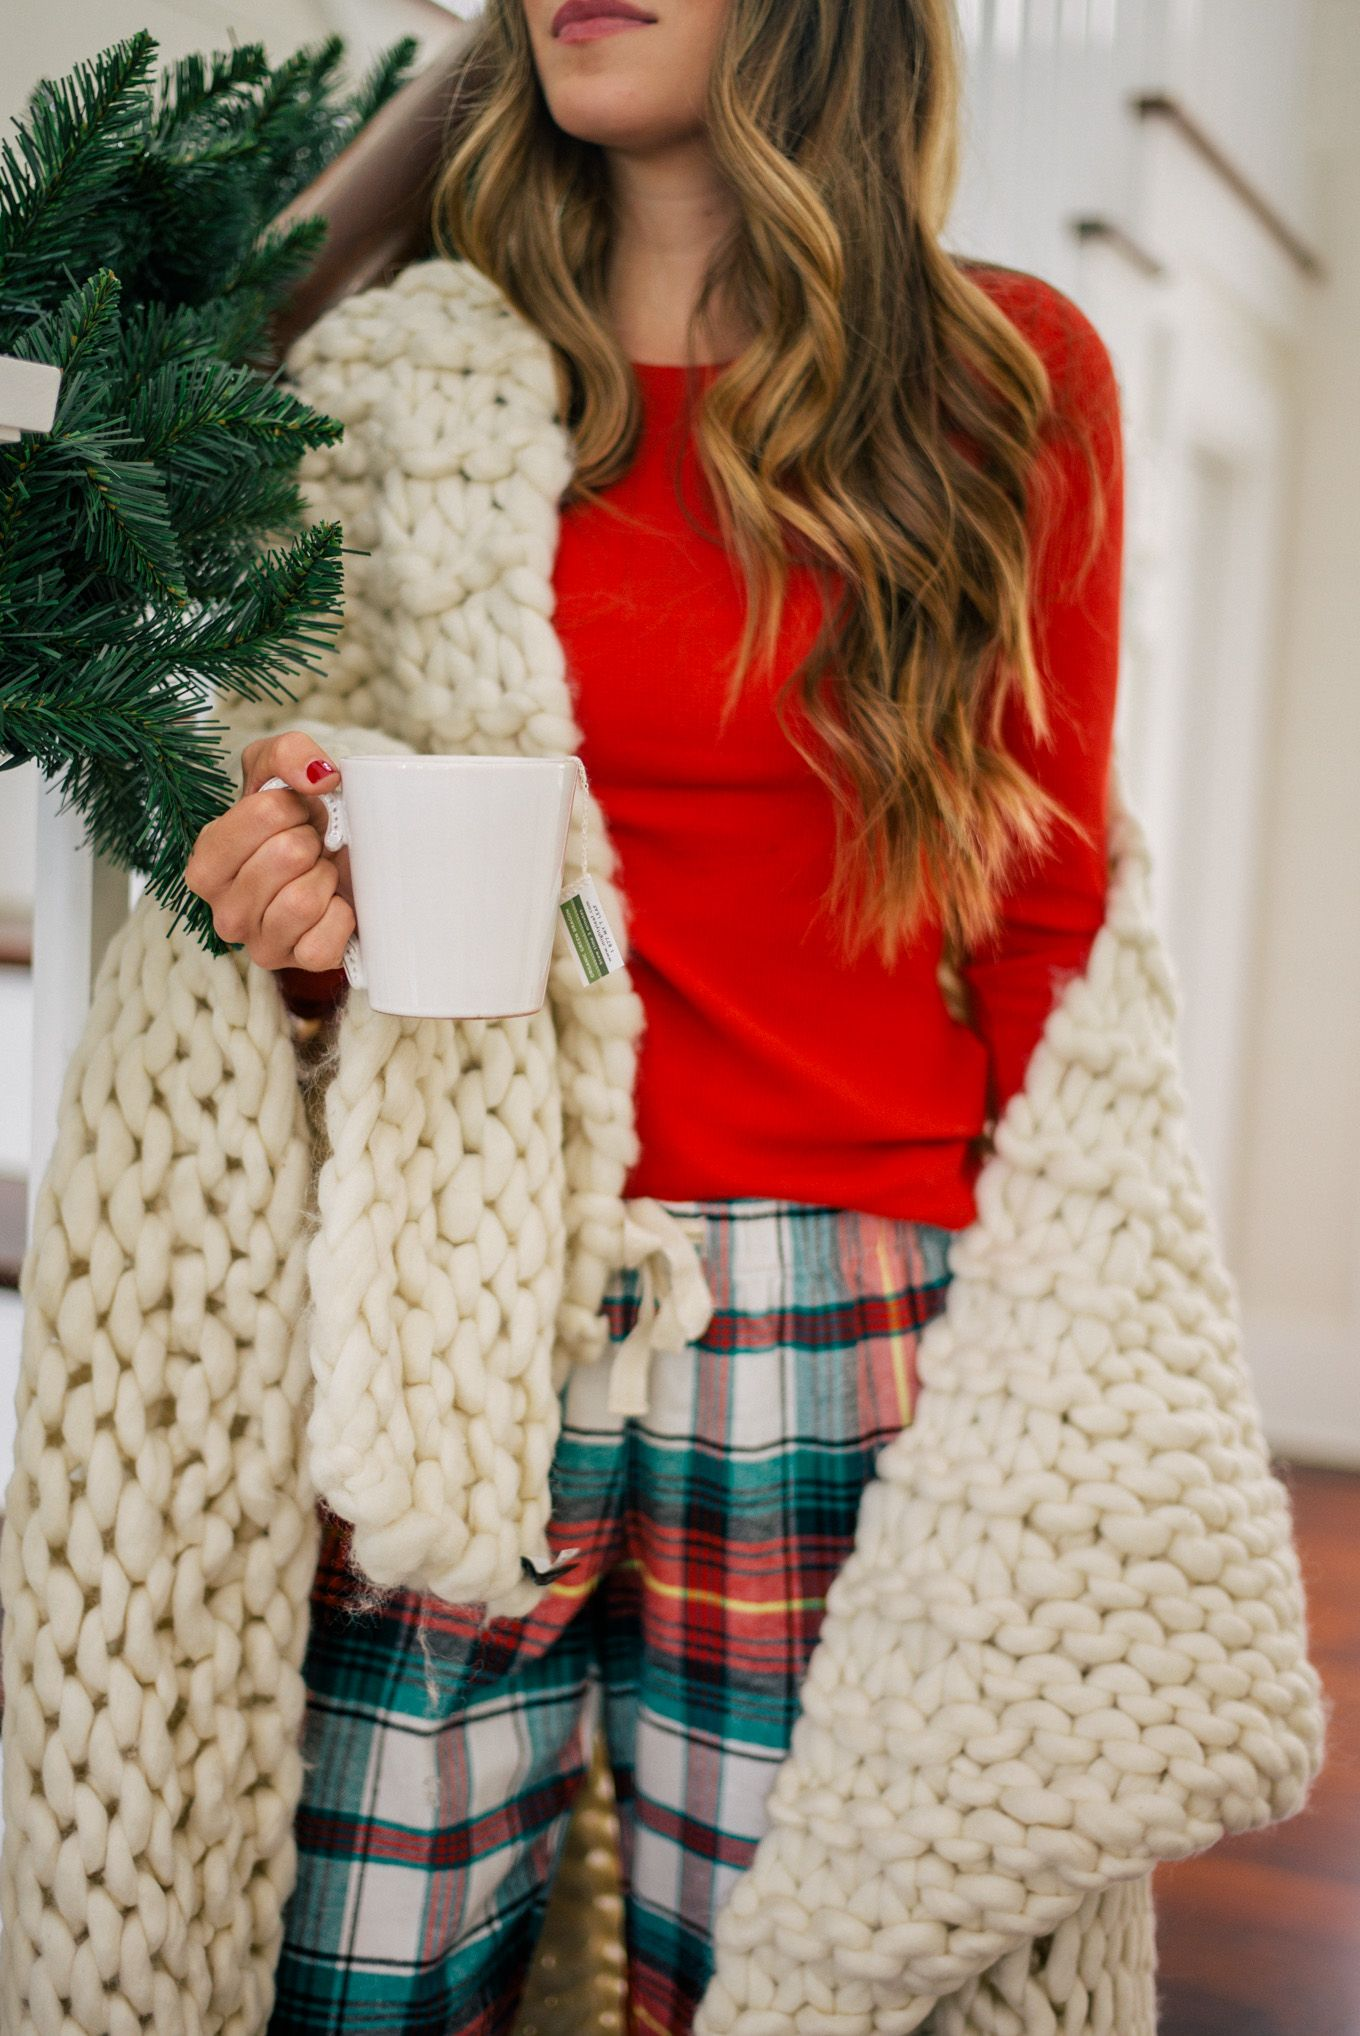 Holiday Red | My Style | Pinterest | Holiday, Christmas and Winter